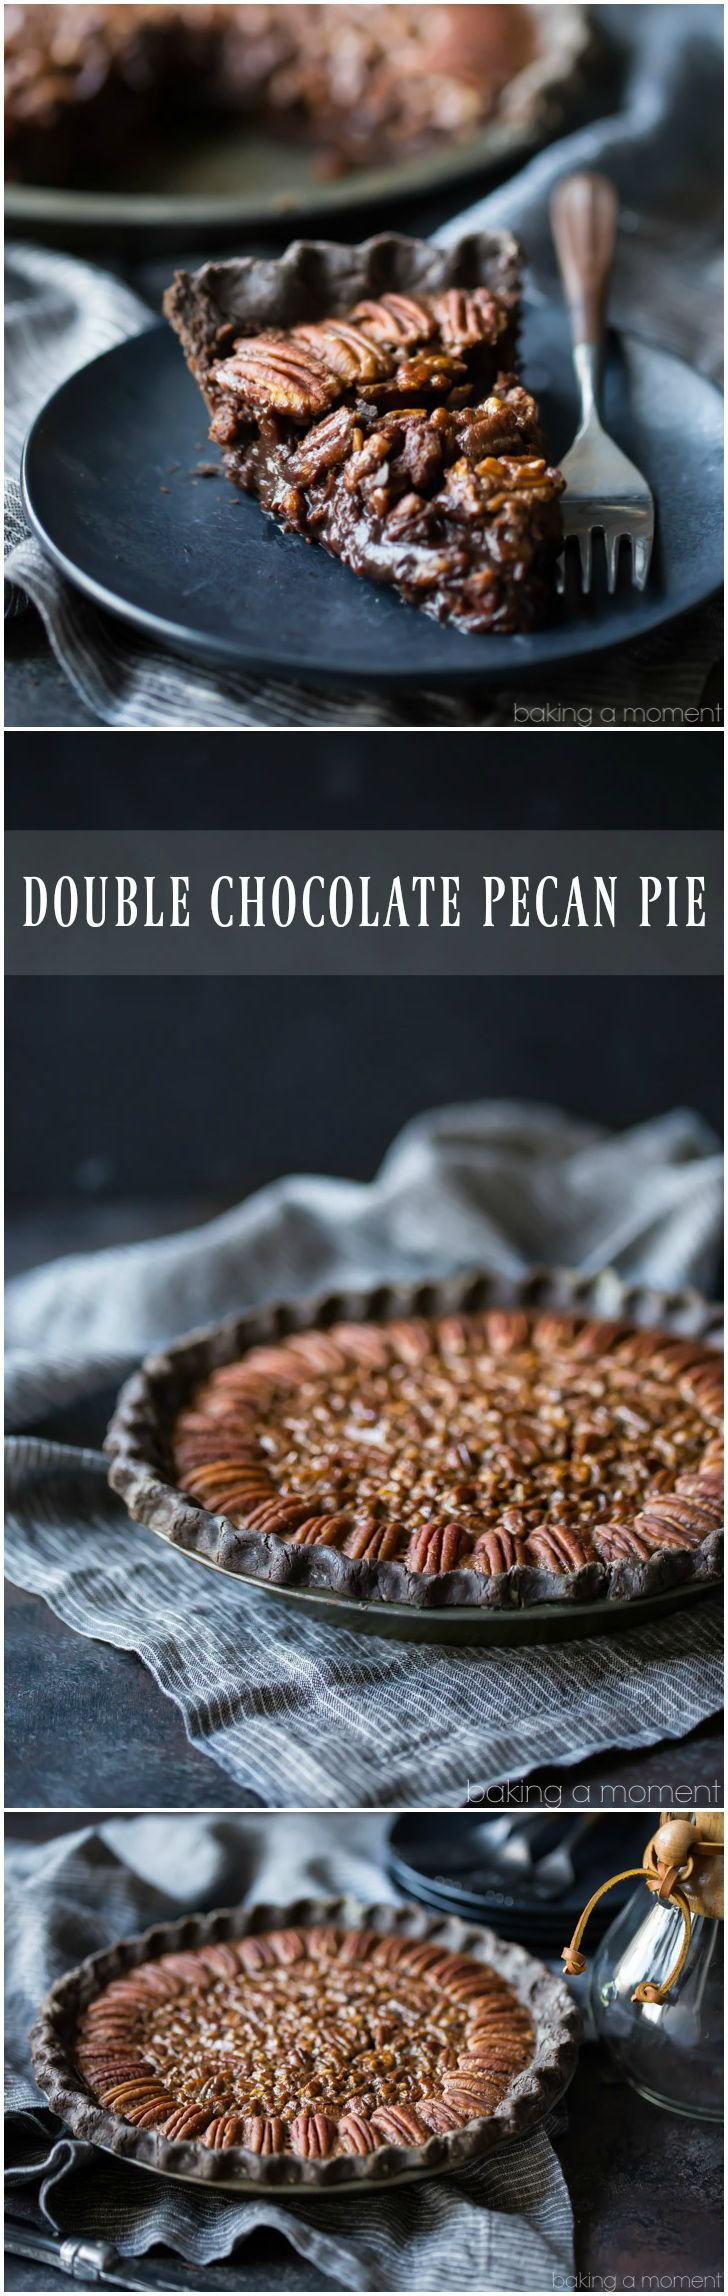 Double chocolate pecan pie: take your pecan pie to the next level, with a chocolate crust and sweet chocolate pecan filling. Made with no corn syrup.